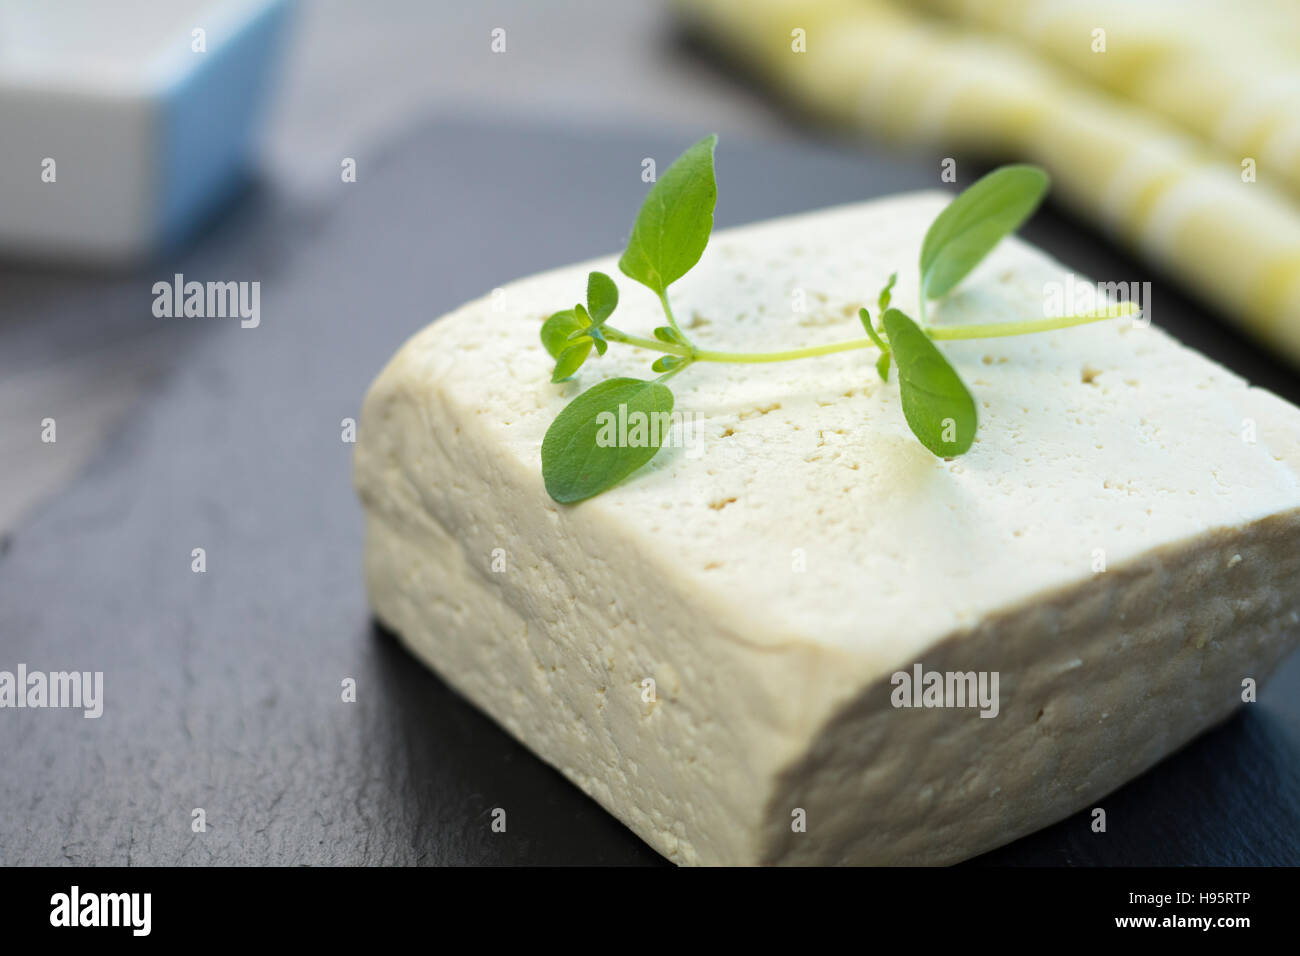 Big tofu chunk on a black stone tray with fresh oregano and green cloth in the background. - Stock Image